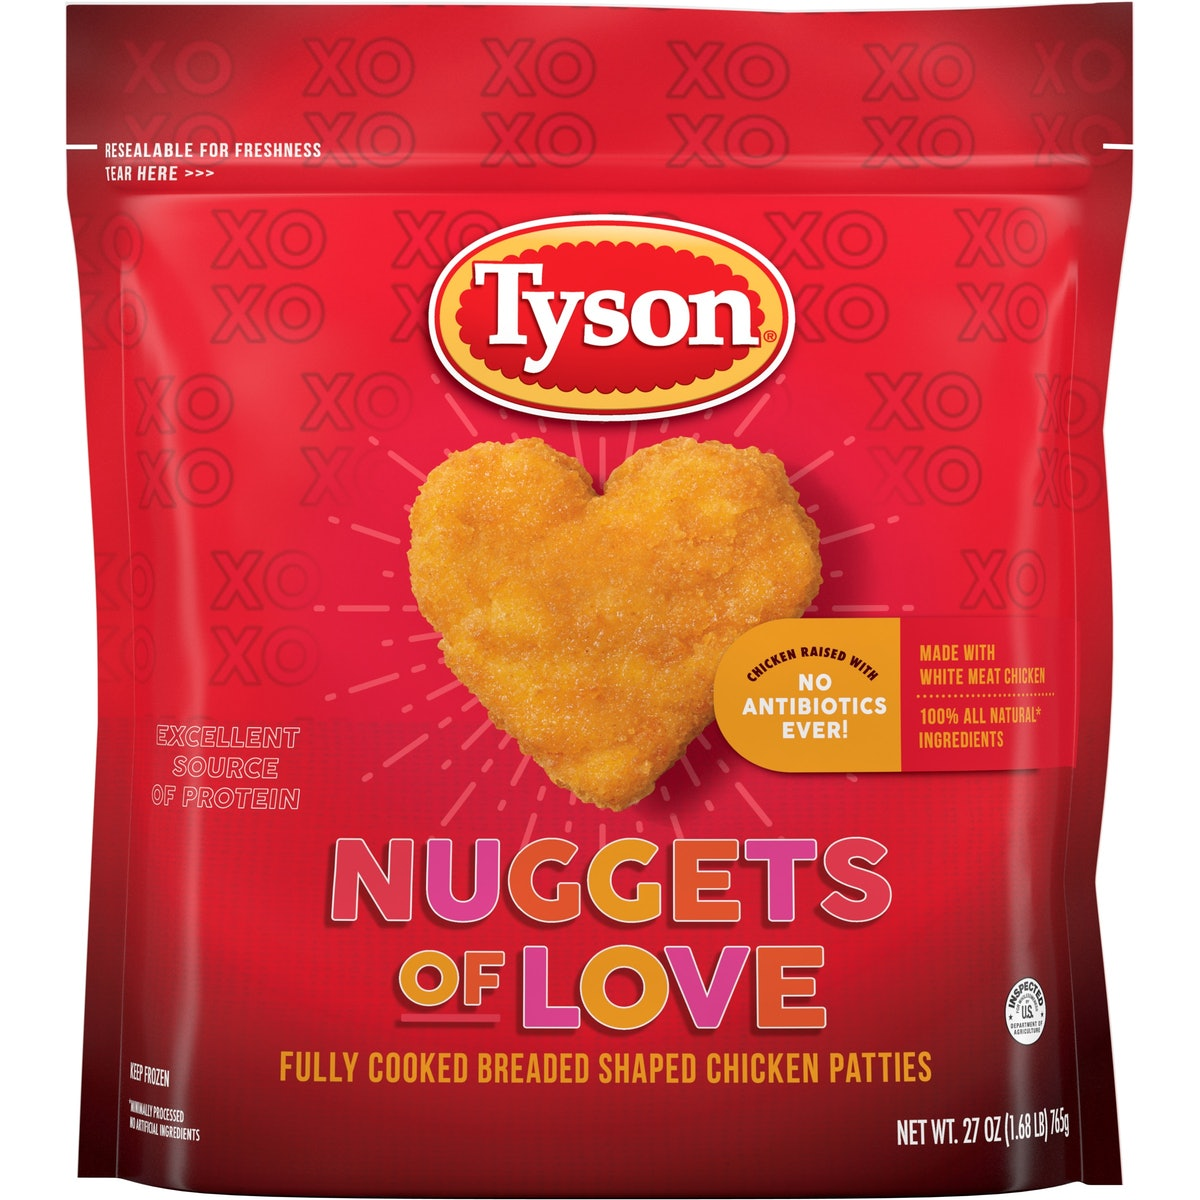 Here's how to get Tyson's heart-shaped Nuggets of Love before they're gone.